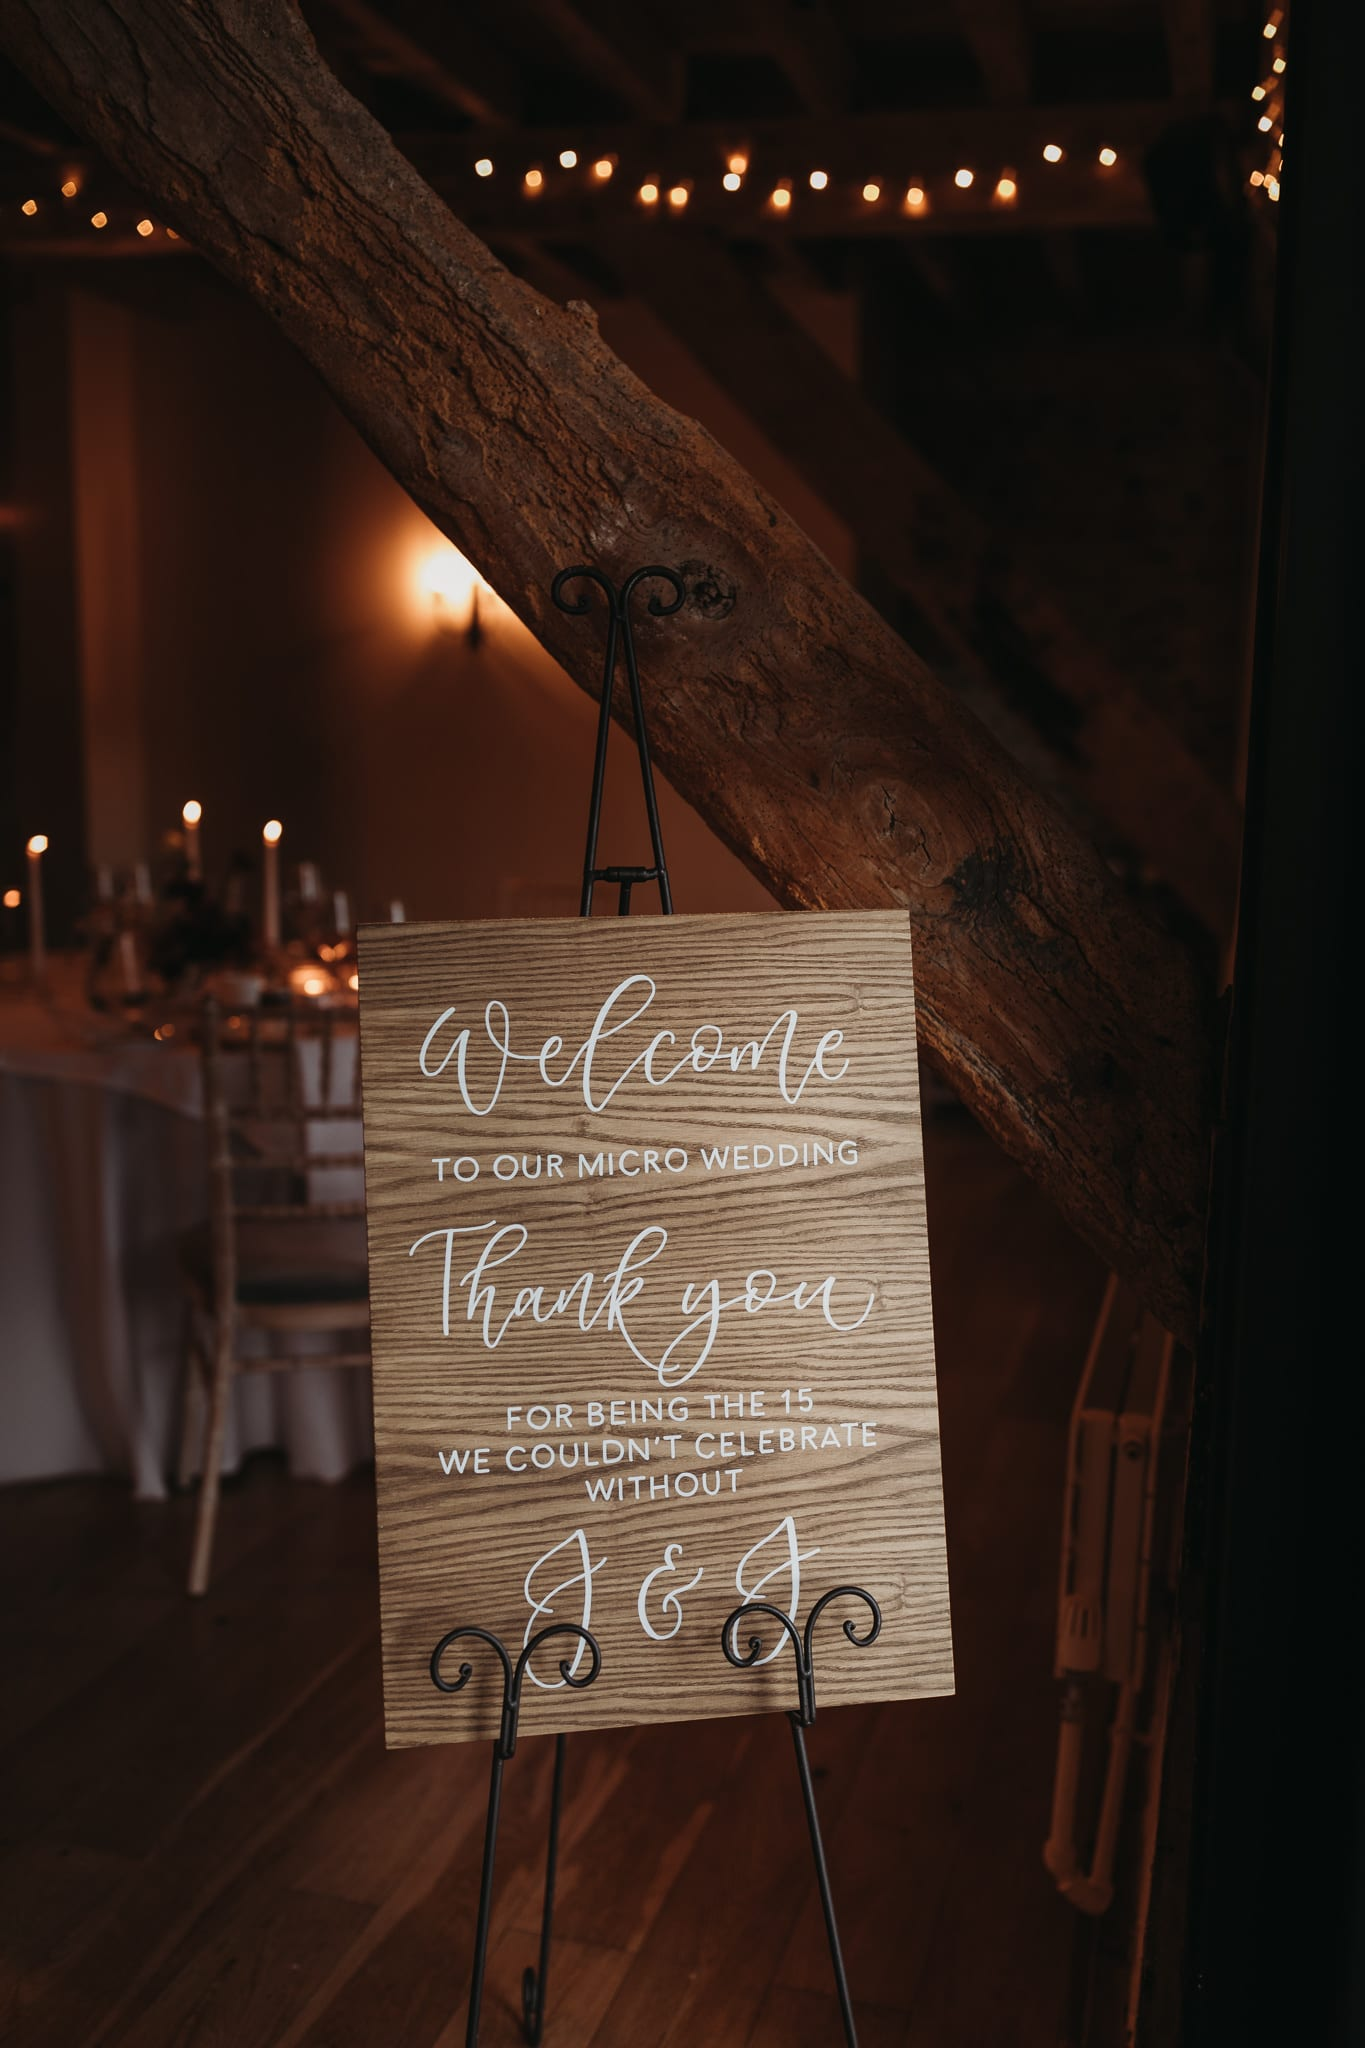 wedding welcome sign with warm lights in background Granary Estates Intimate wedding